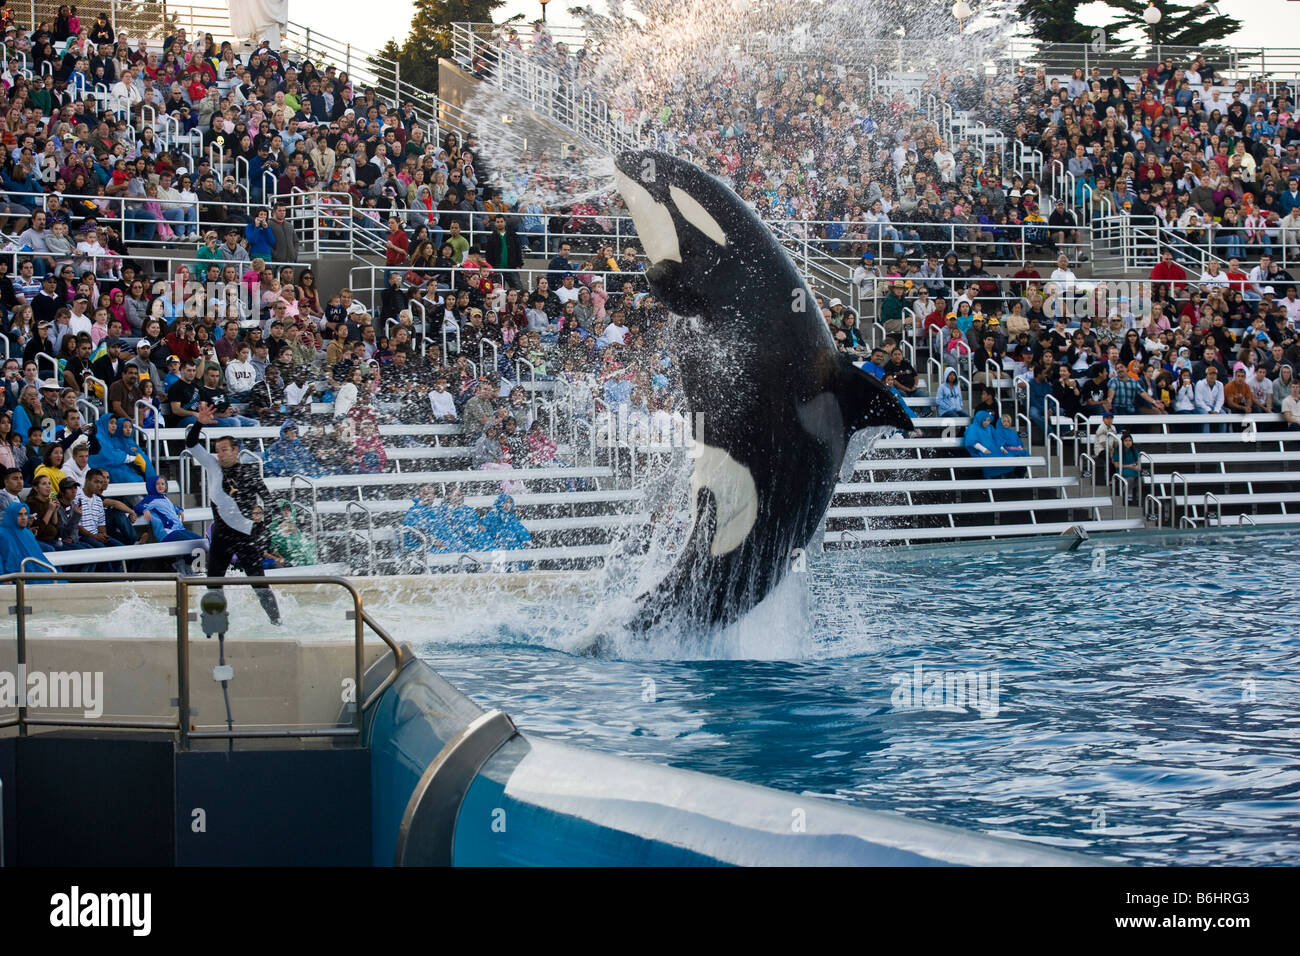 Orca or killer whale performance at Seaworld Mission Bay San Diego - Stock Image